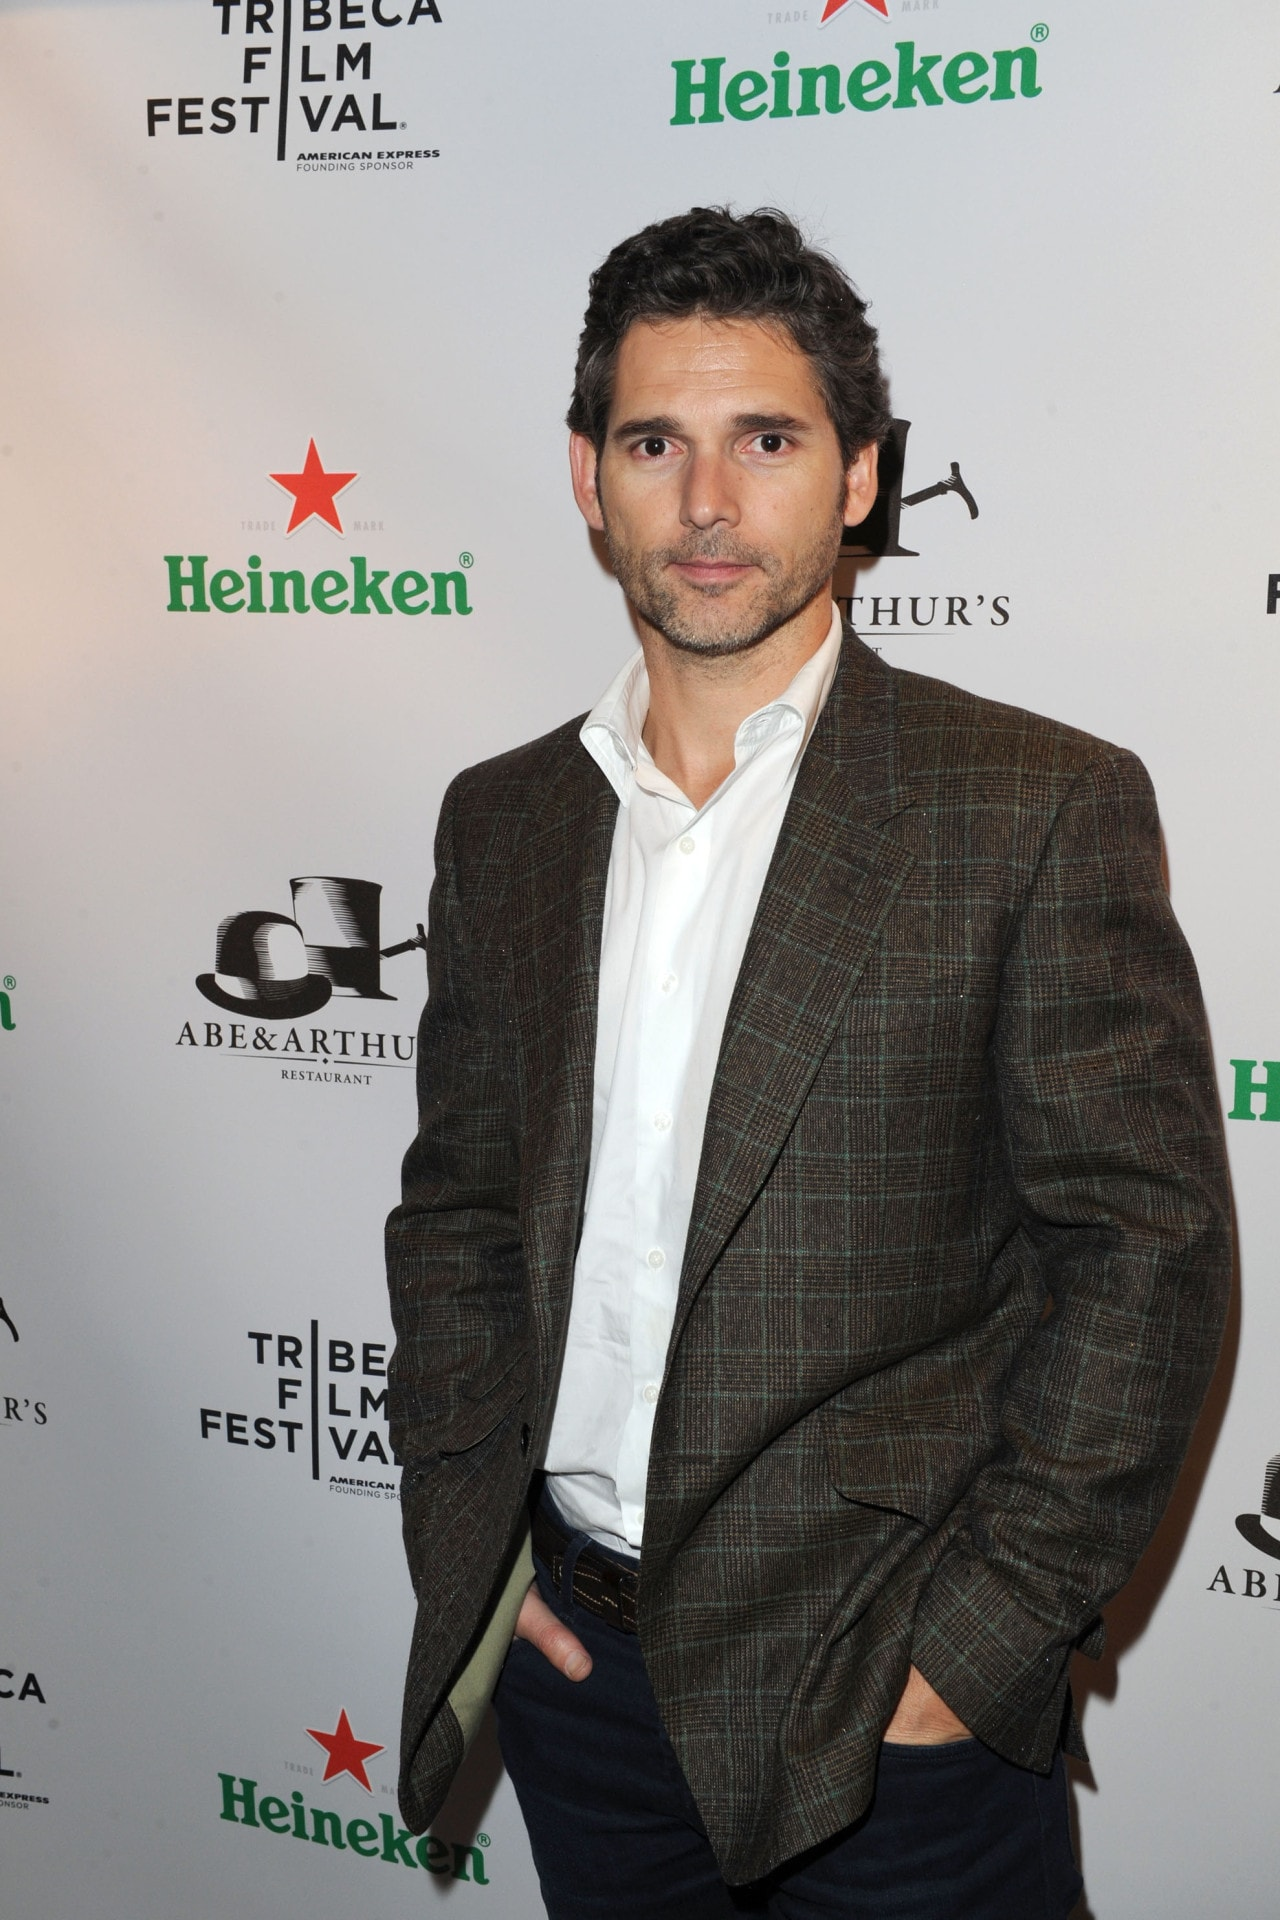 Cult podcast Dirty John is being made into a TV show starring Eric Bana